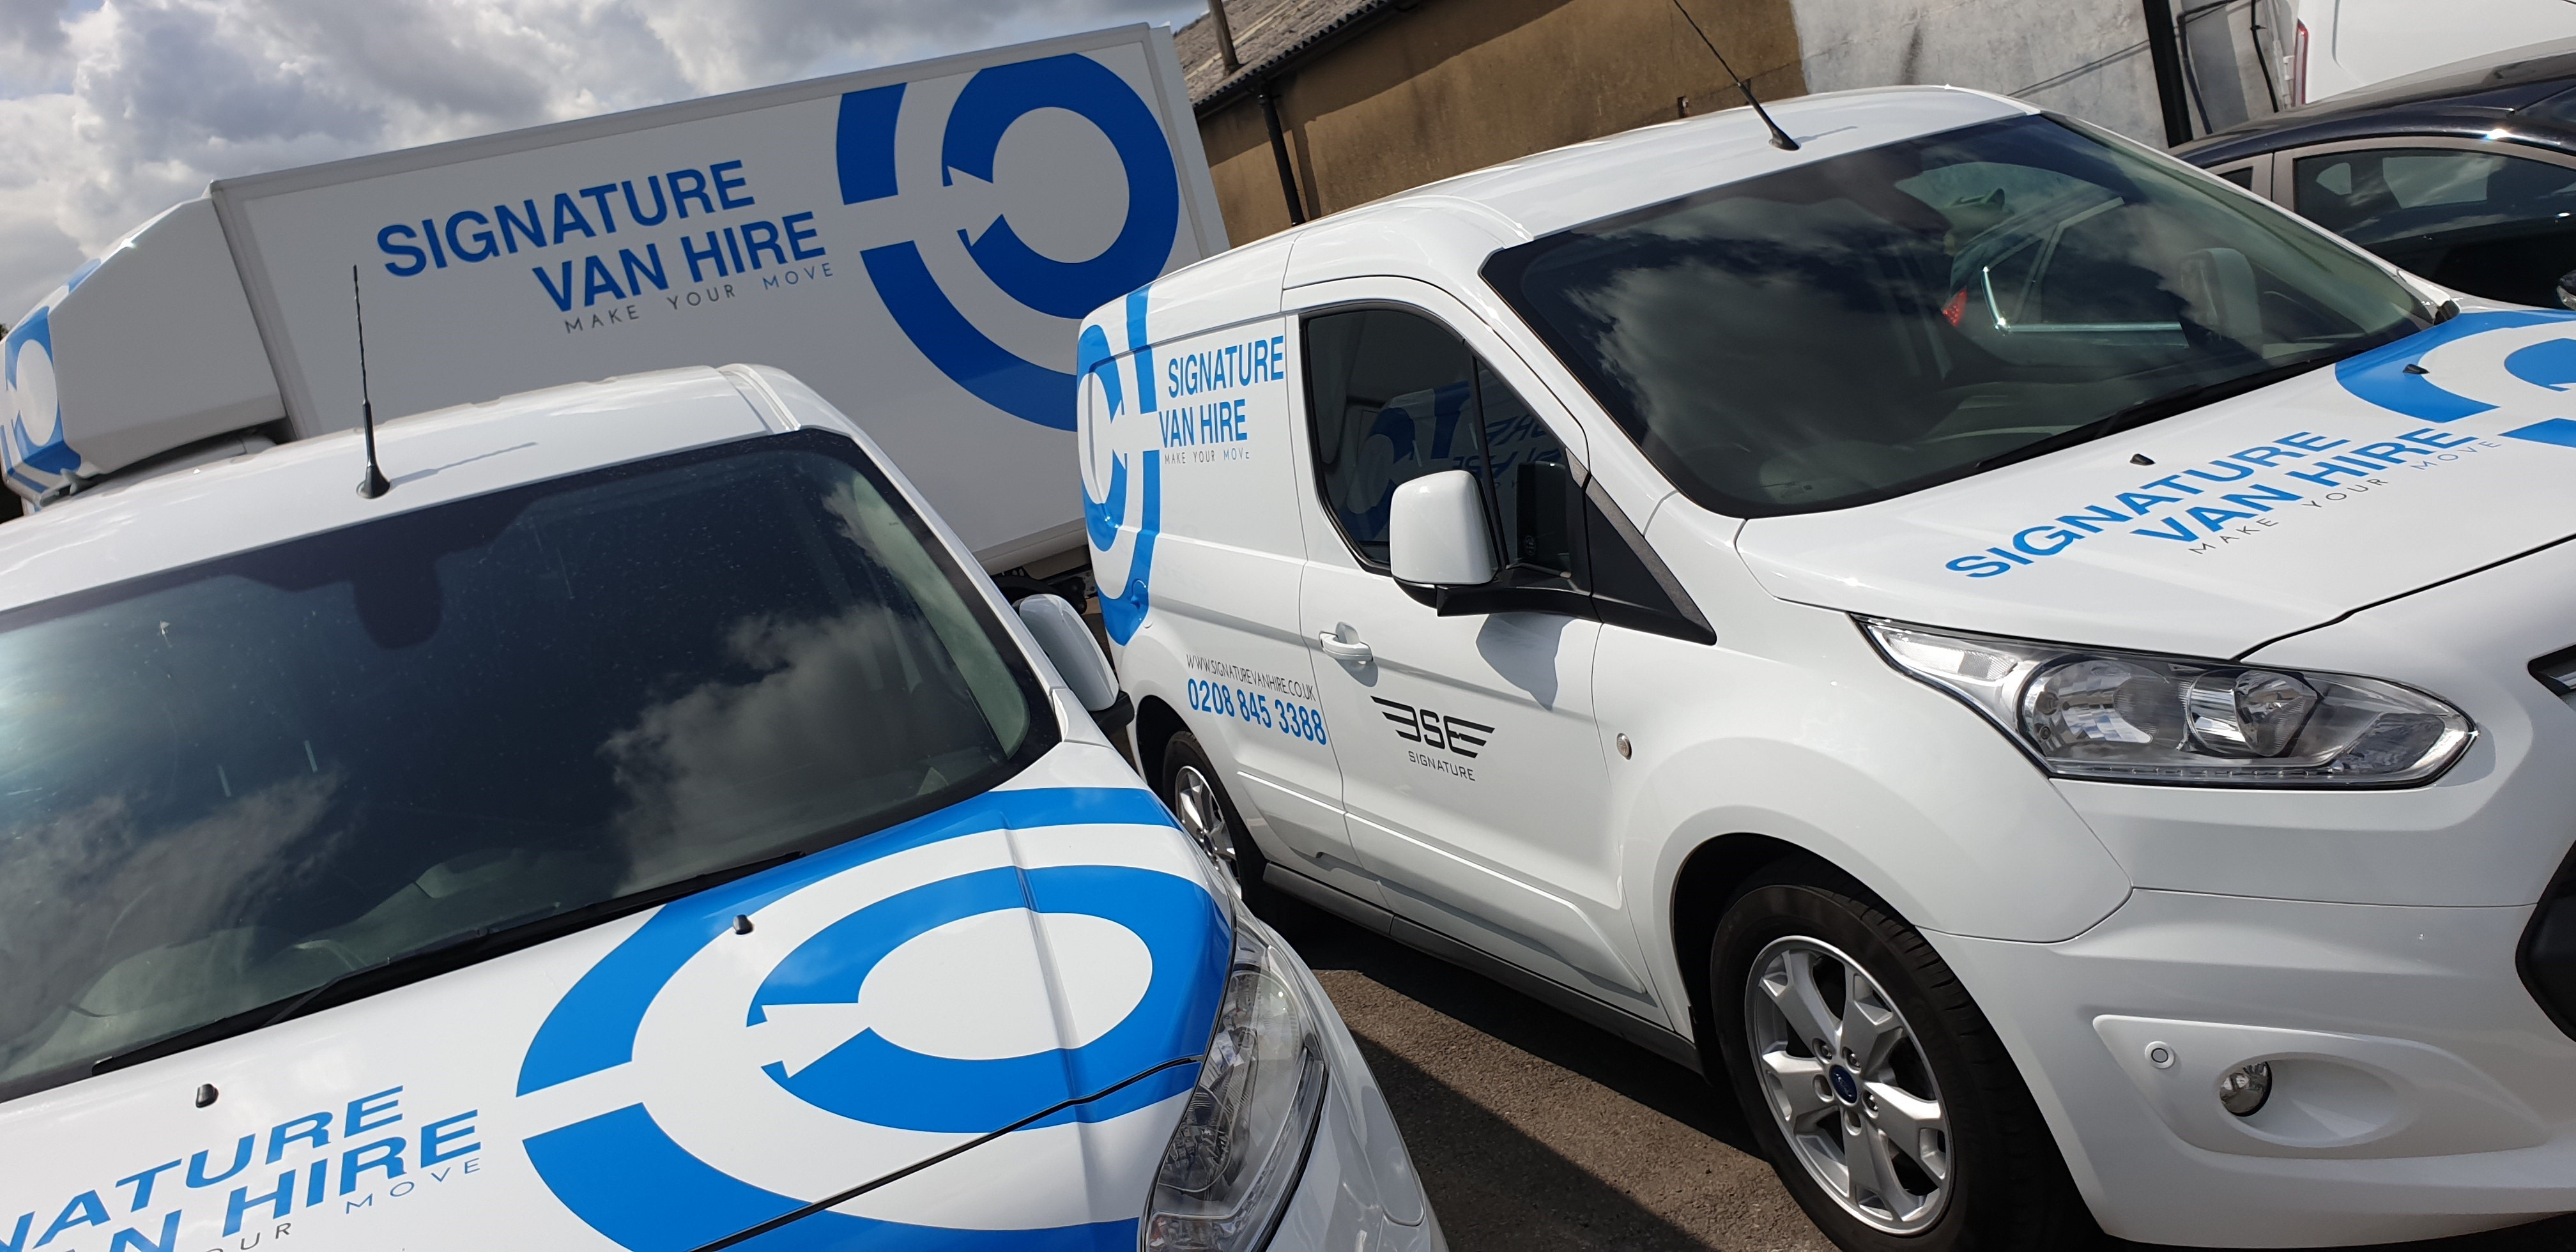 Want to rent a van for short-term or long-term basis? Call Signature Van Hire